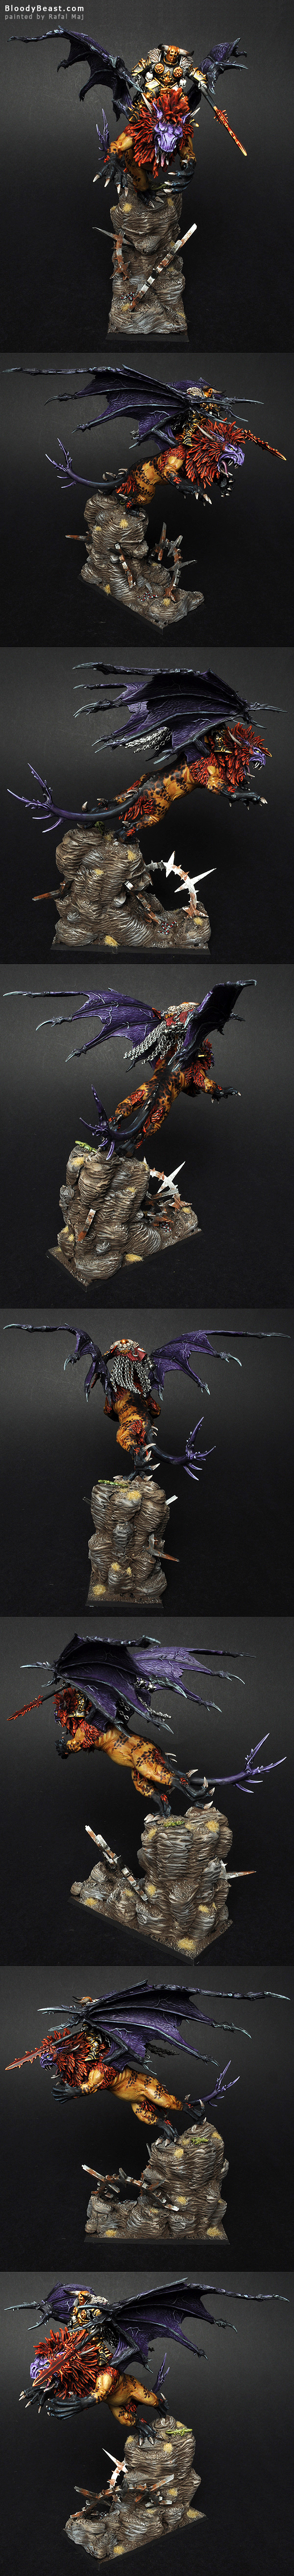 Chaos Lord on Manticore painted by Rafal Maj (BloodyBeast.com)